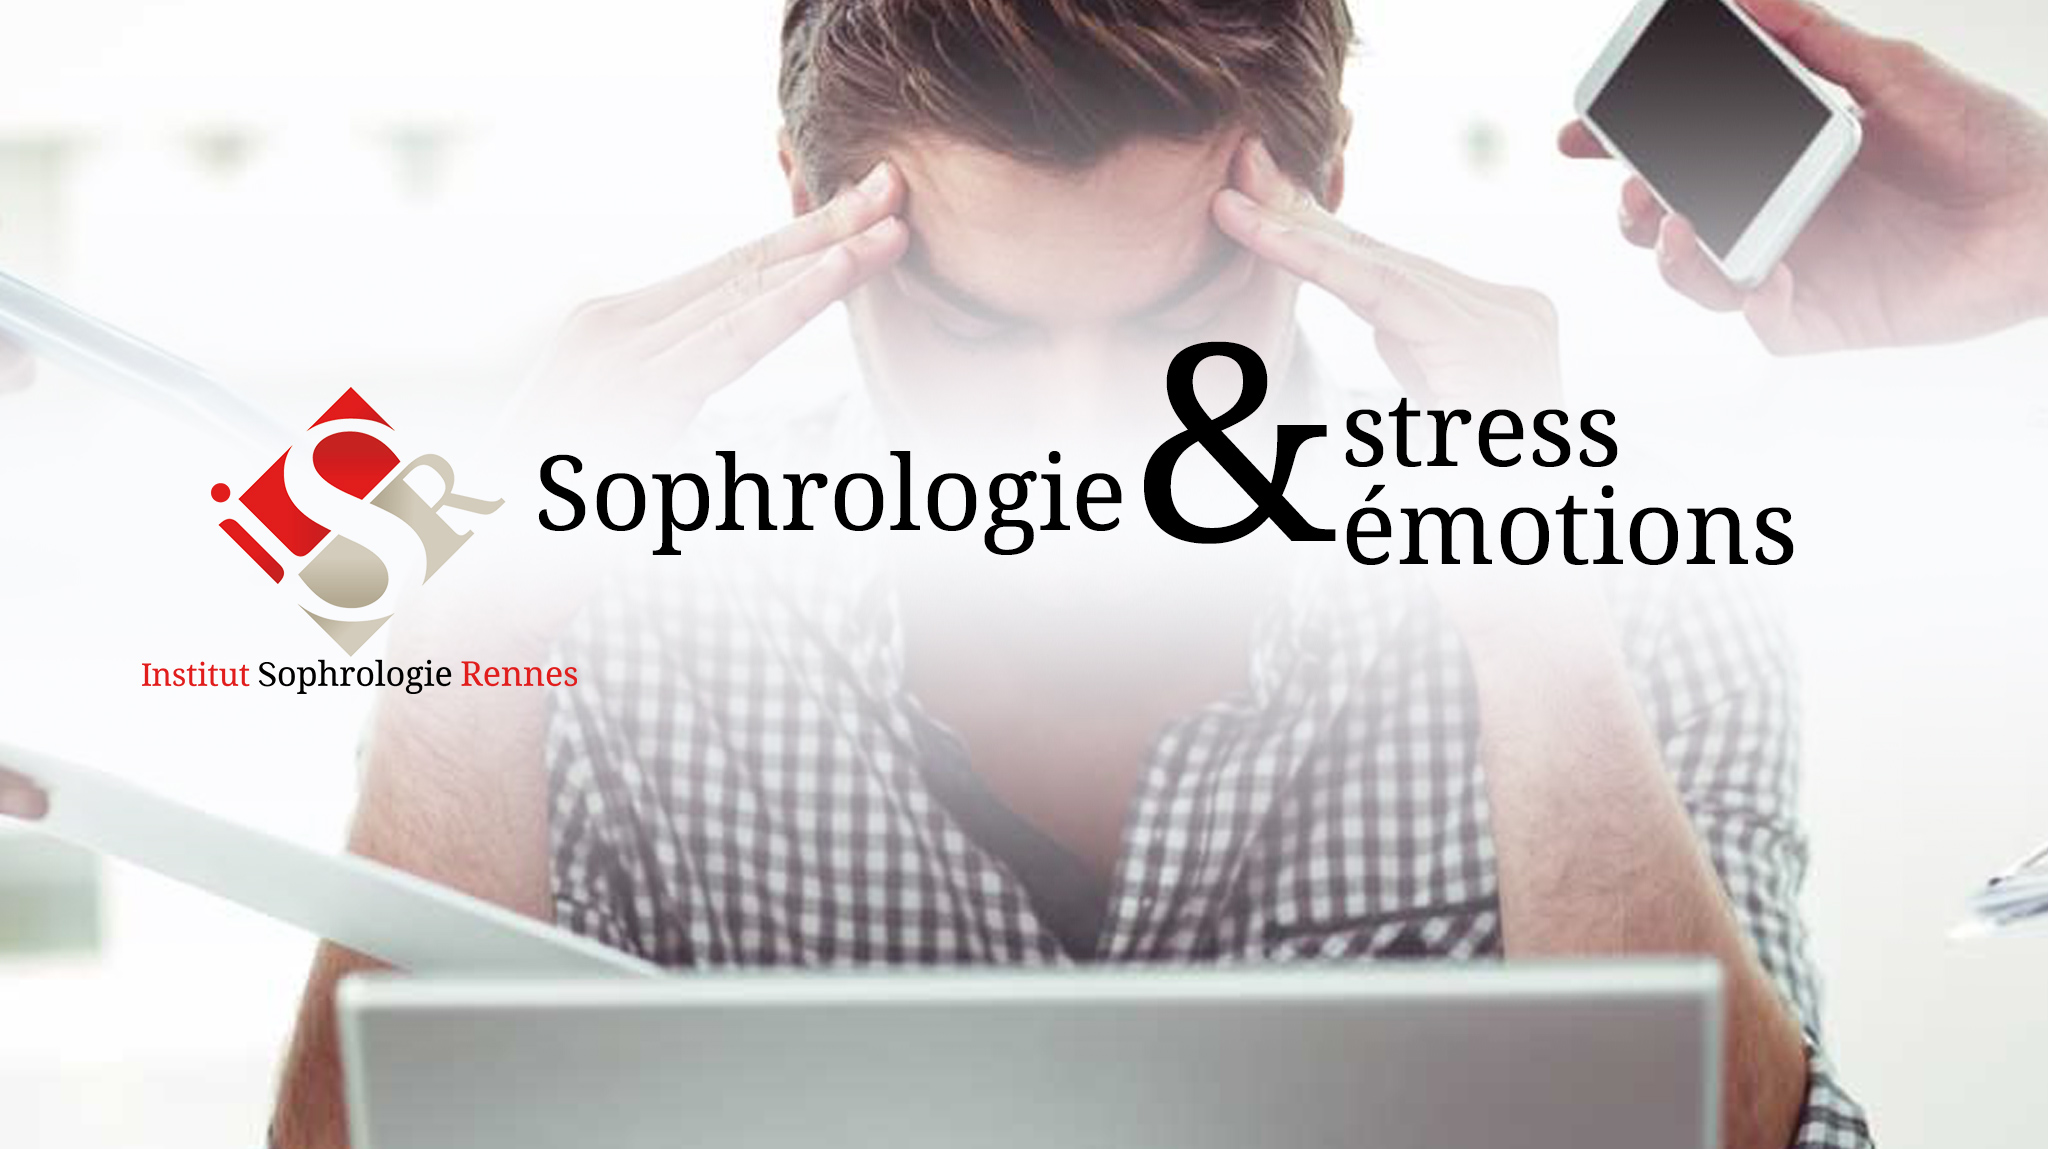 Sophrologie, Stress et emotions